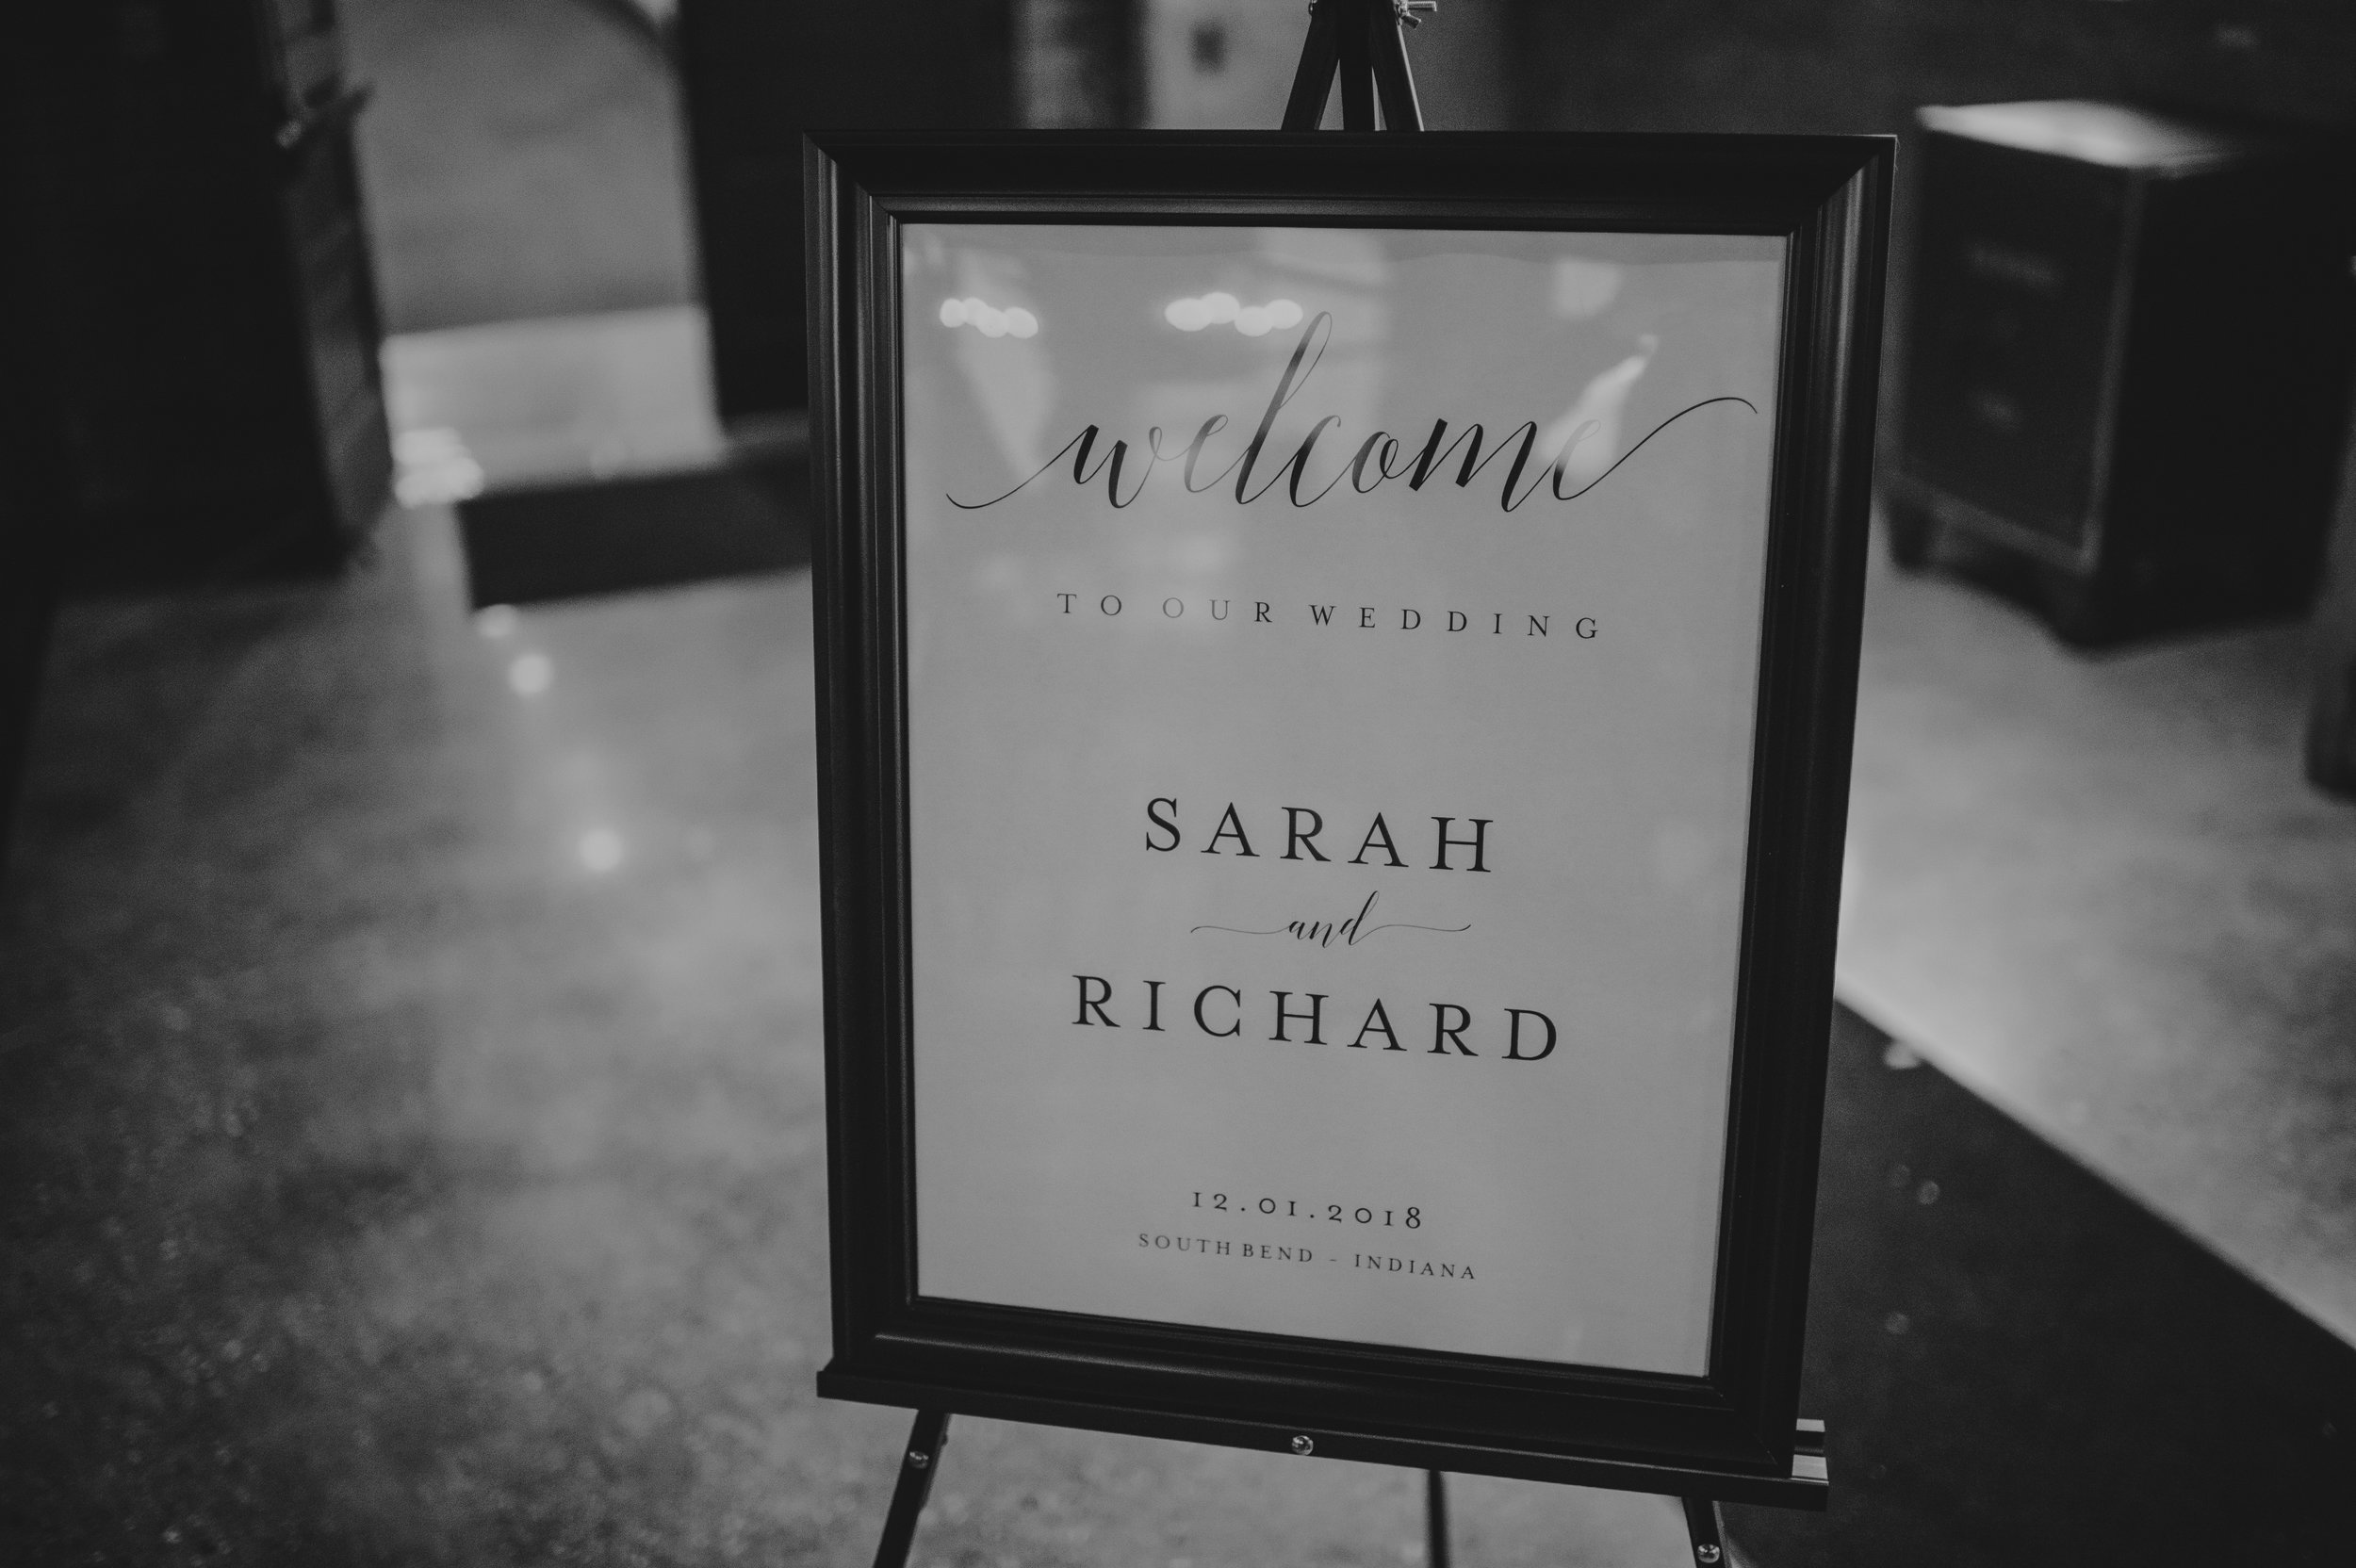 The Armory South Bend Indiana Wedding - Chicago Wedding Photographer